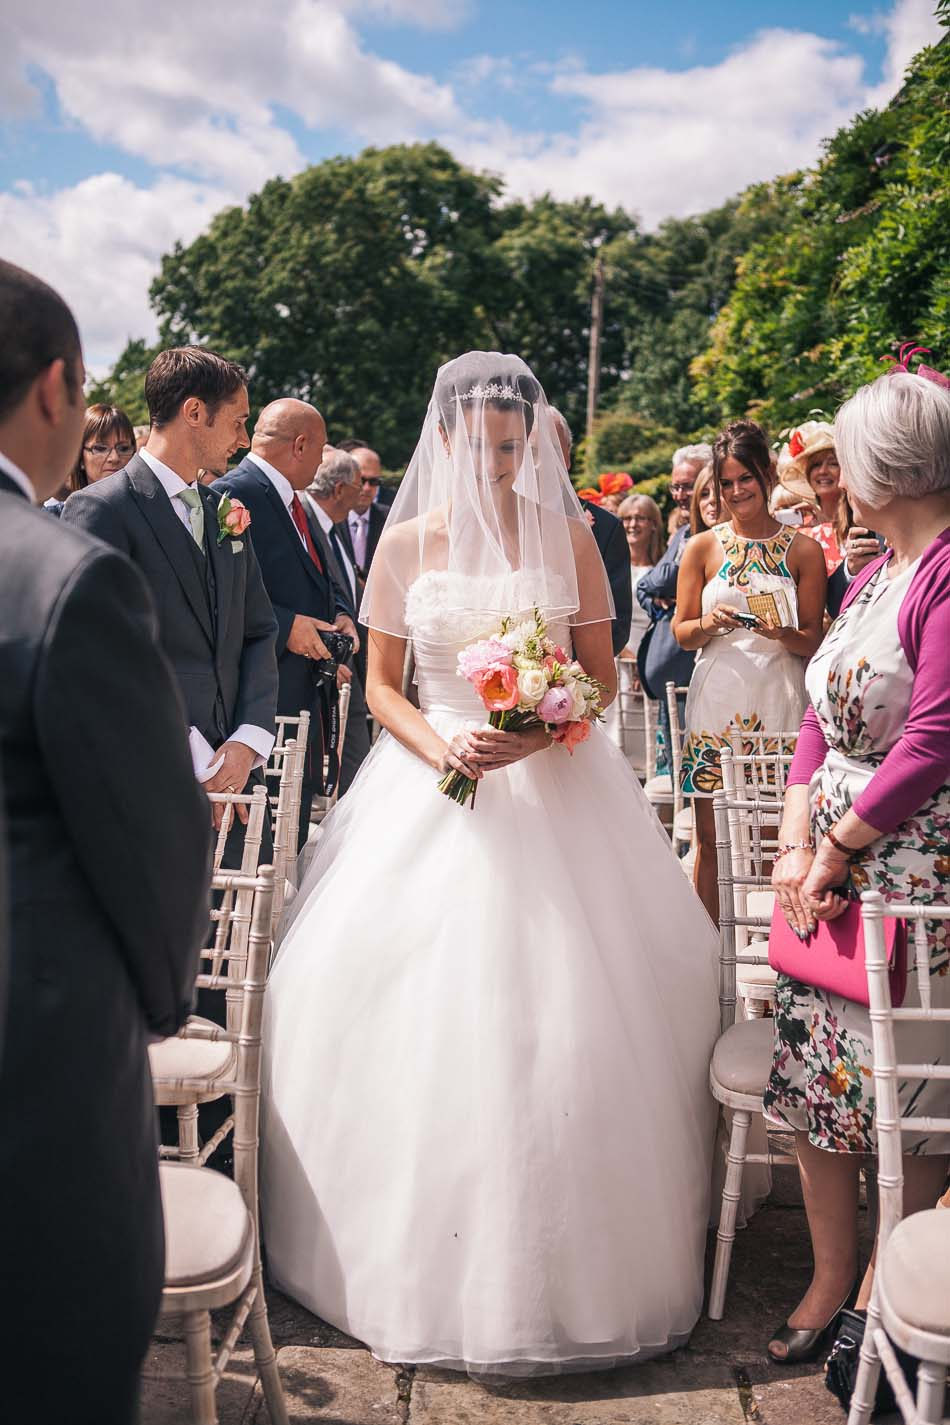 Hilltop Country House Outdoor Ceremony